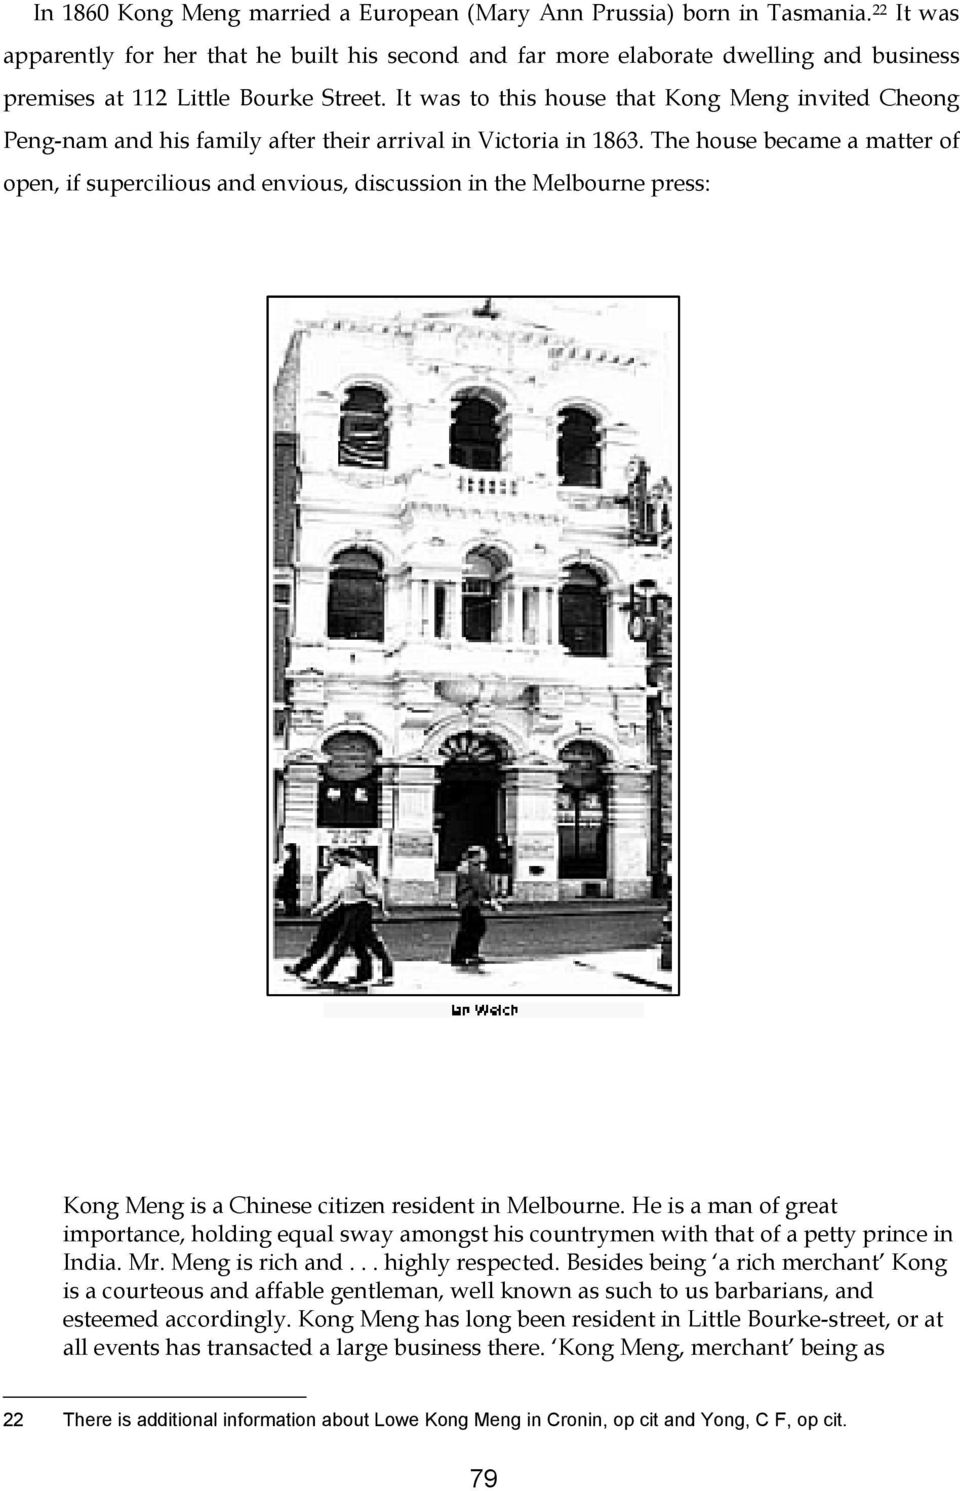 It was to this house that Kong Meng invited Cheong Peng-nam and his family after their arrival in Victoria in 1863.